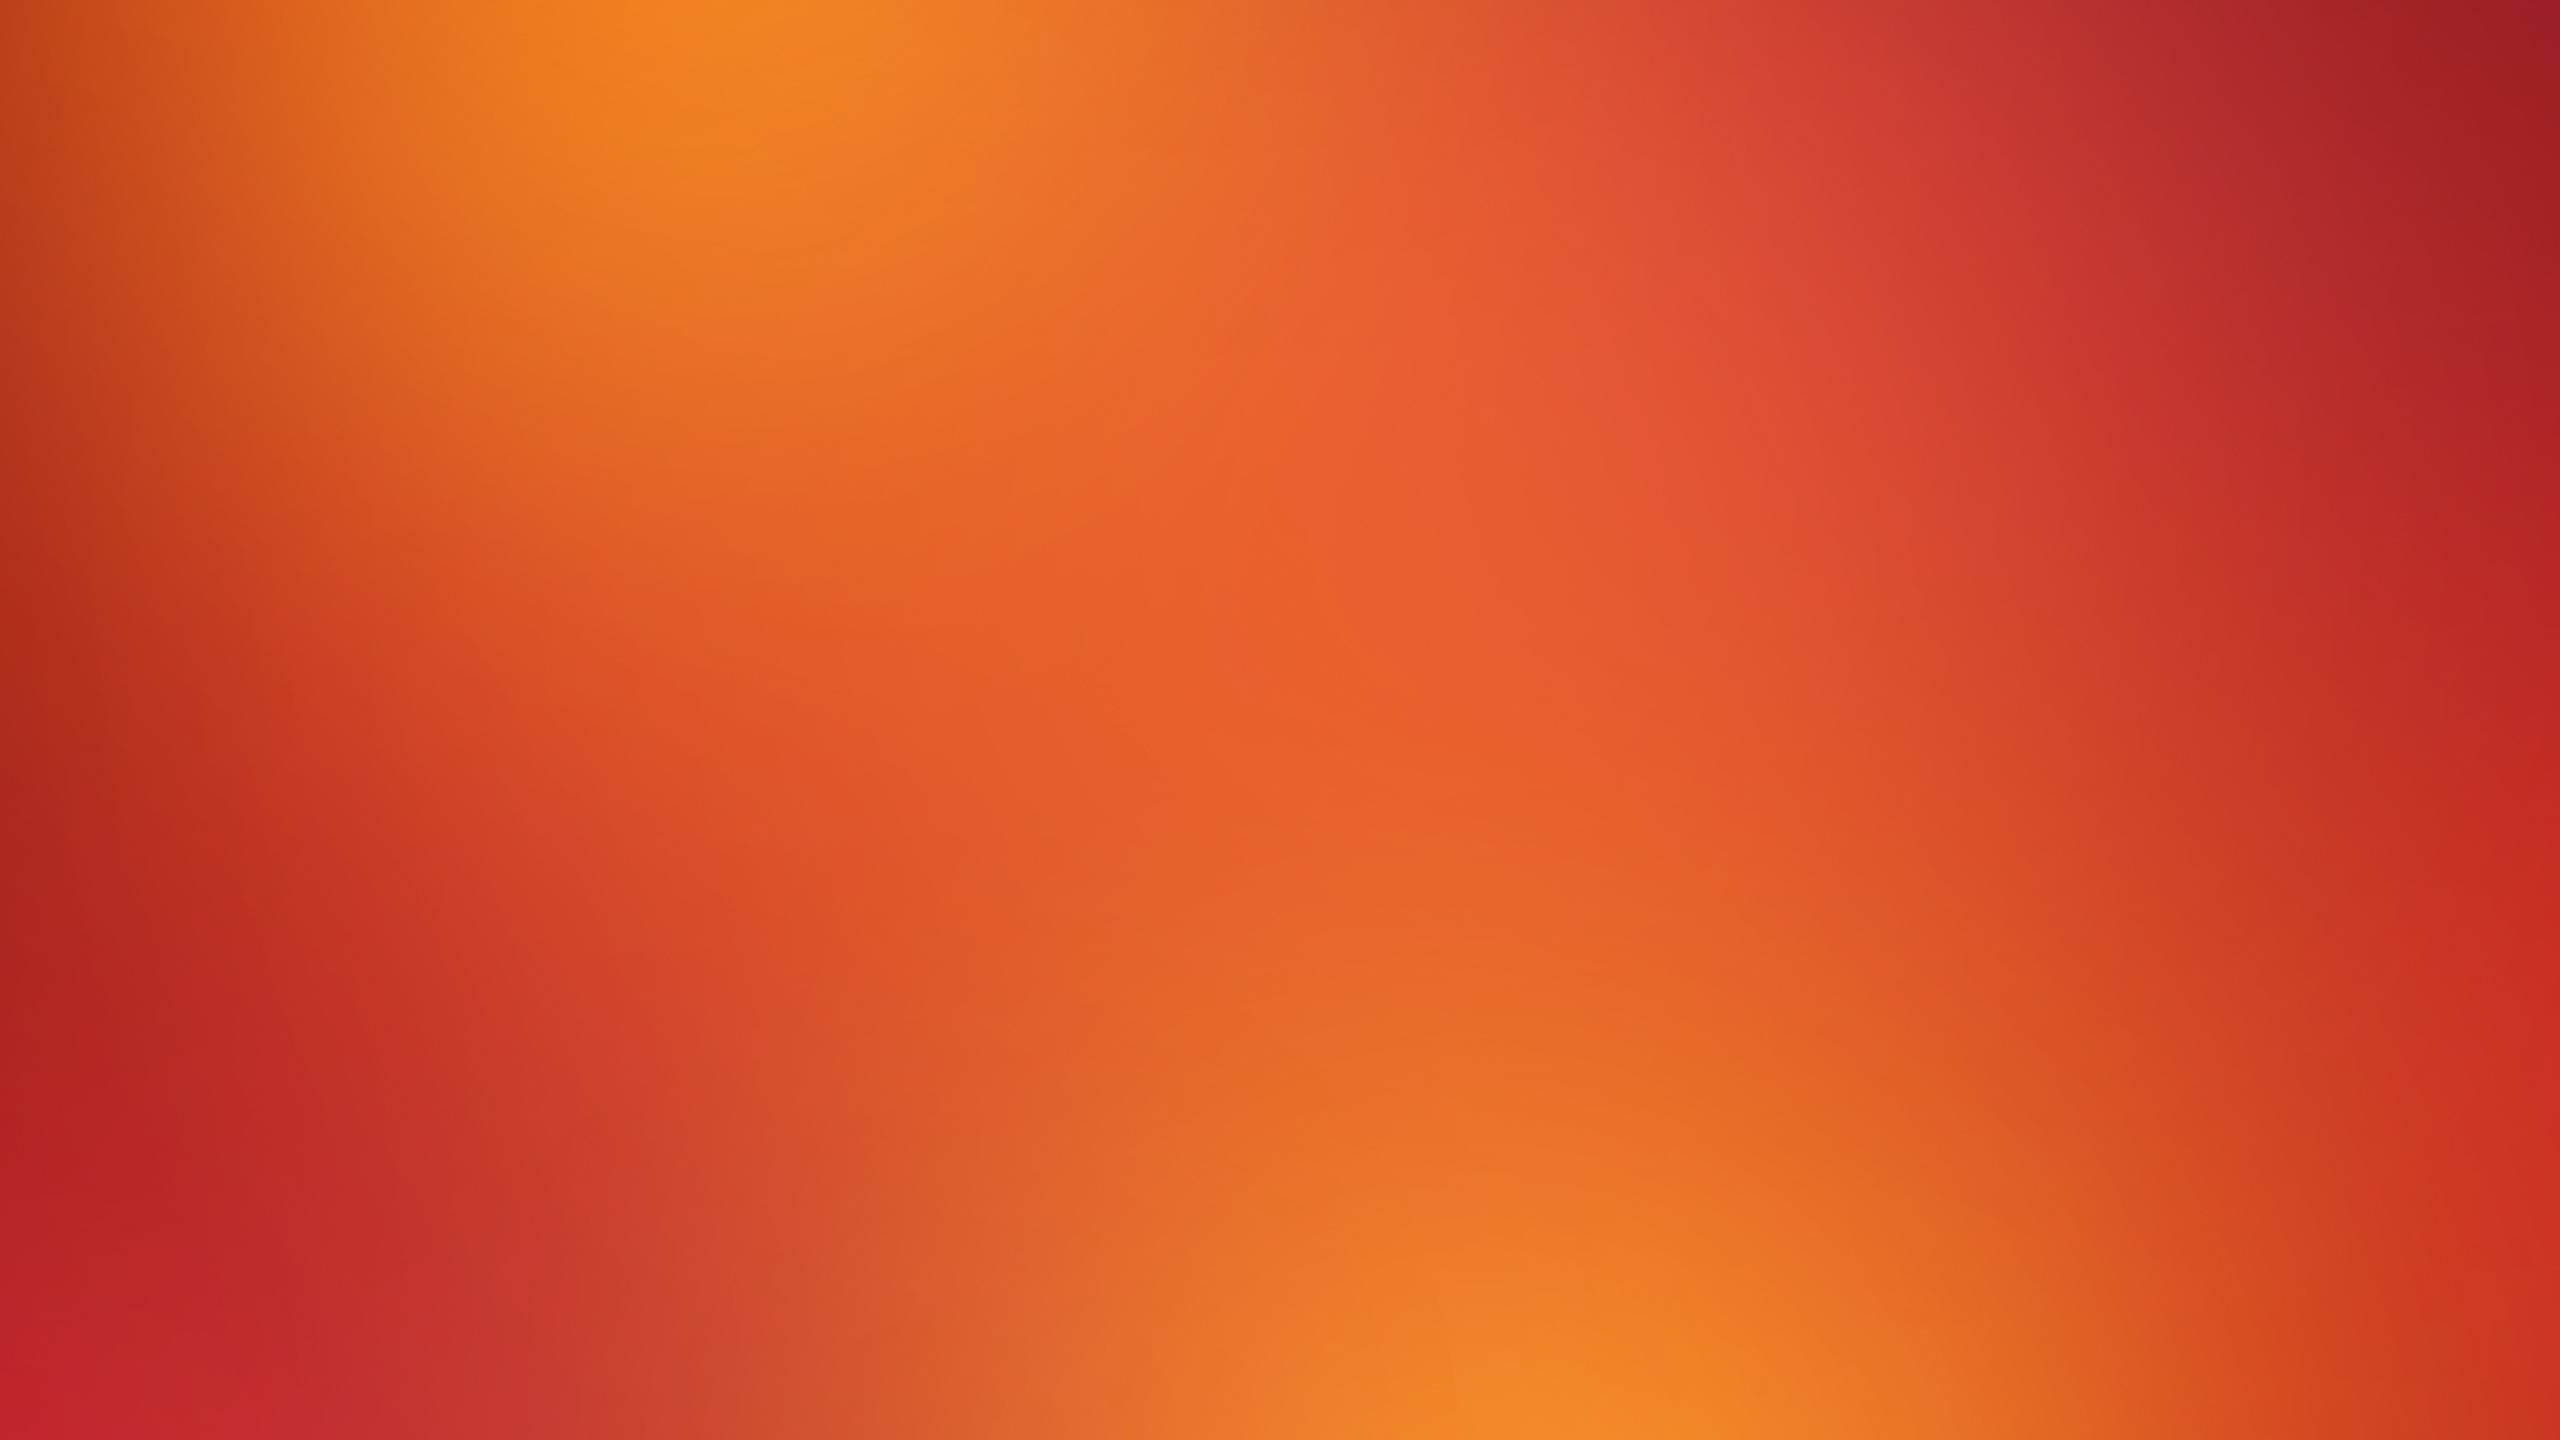 Subtle Orange Wallpaper